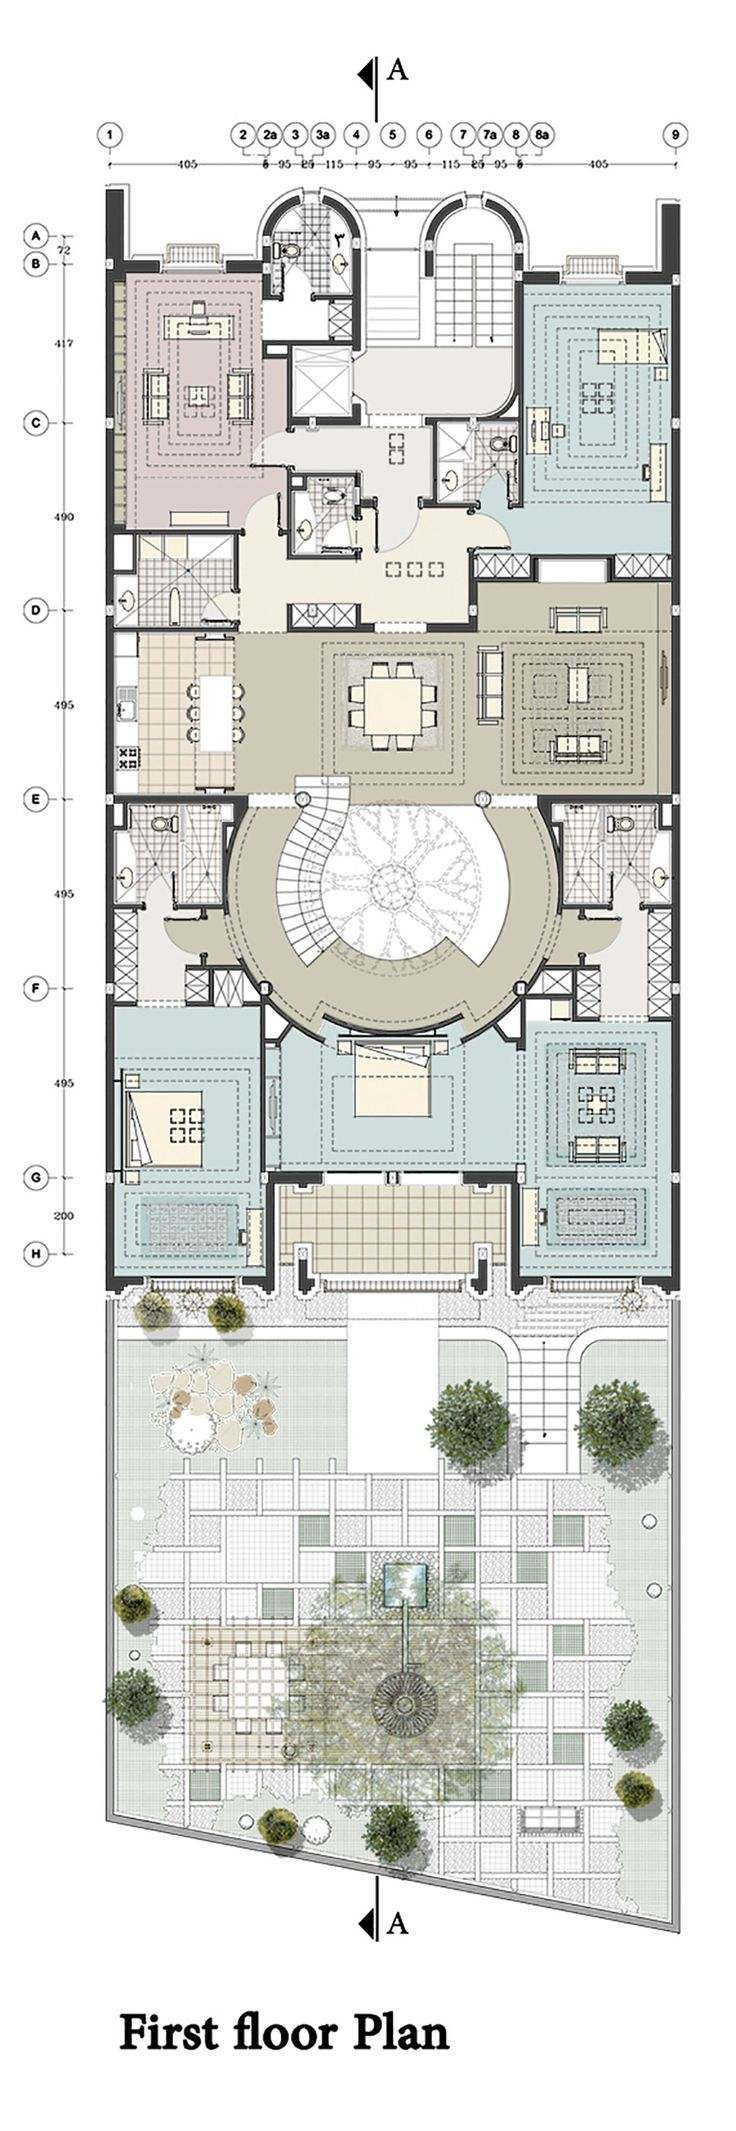 3327 best plans images on pinterest floor plans architecture imagen 18 de 22 de la galeria de renovacion de una casa en kaveh teheran house renovationsdesign studiosprimersfloor plansarchitecture